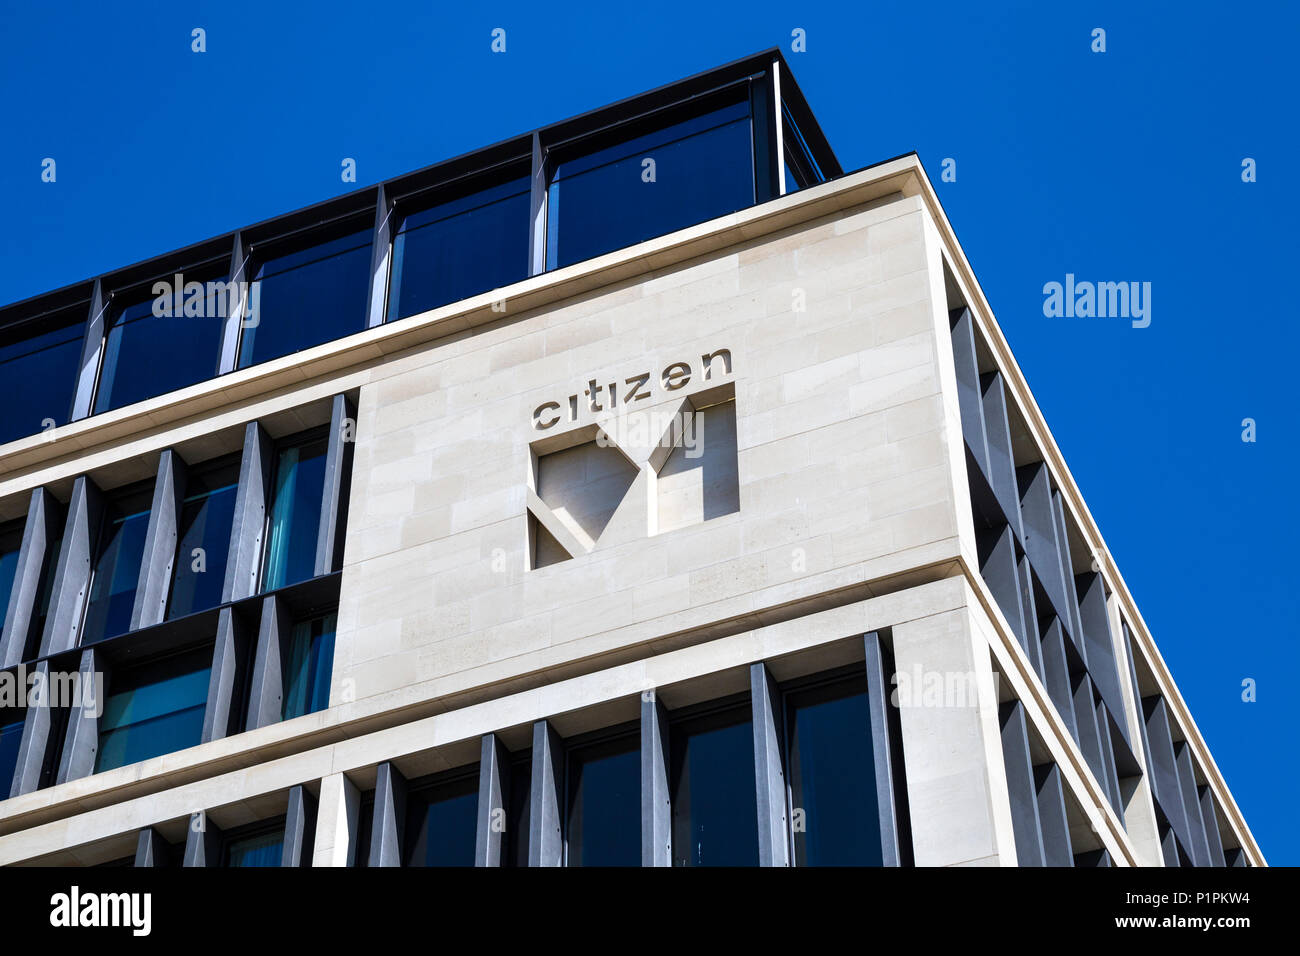 Logo of Dutch hotel chain CitizenM on their building in London, UK - Stock Image